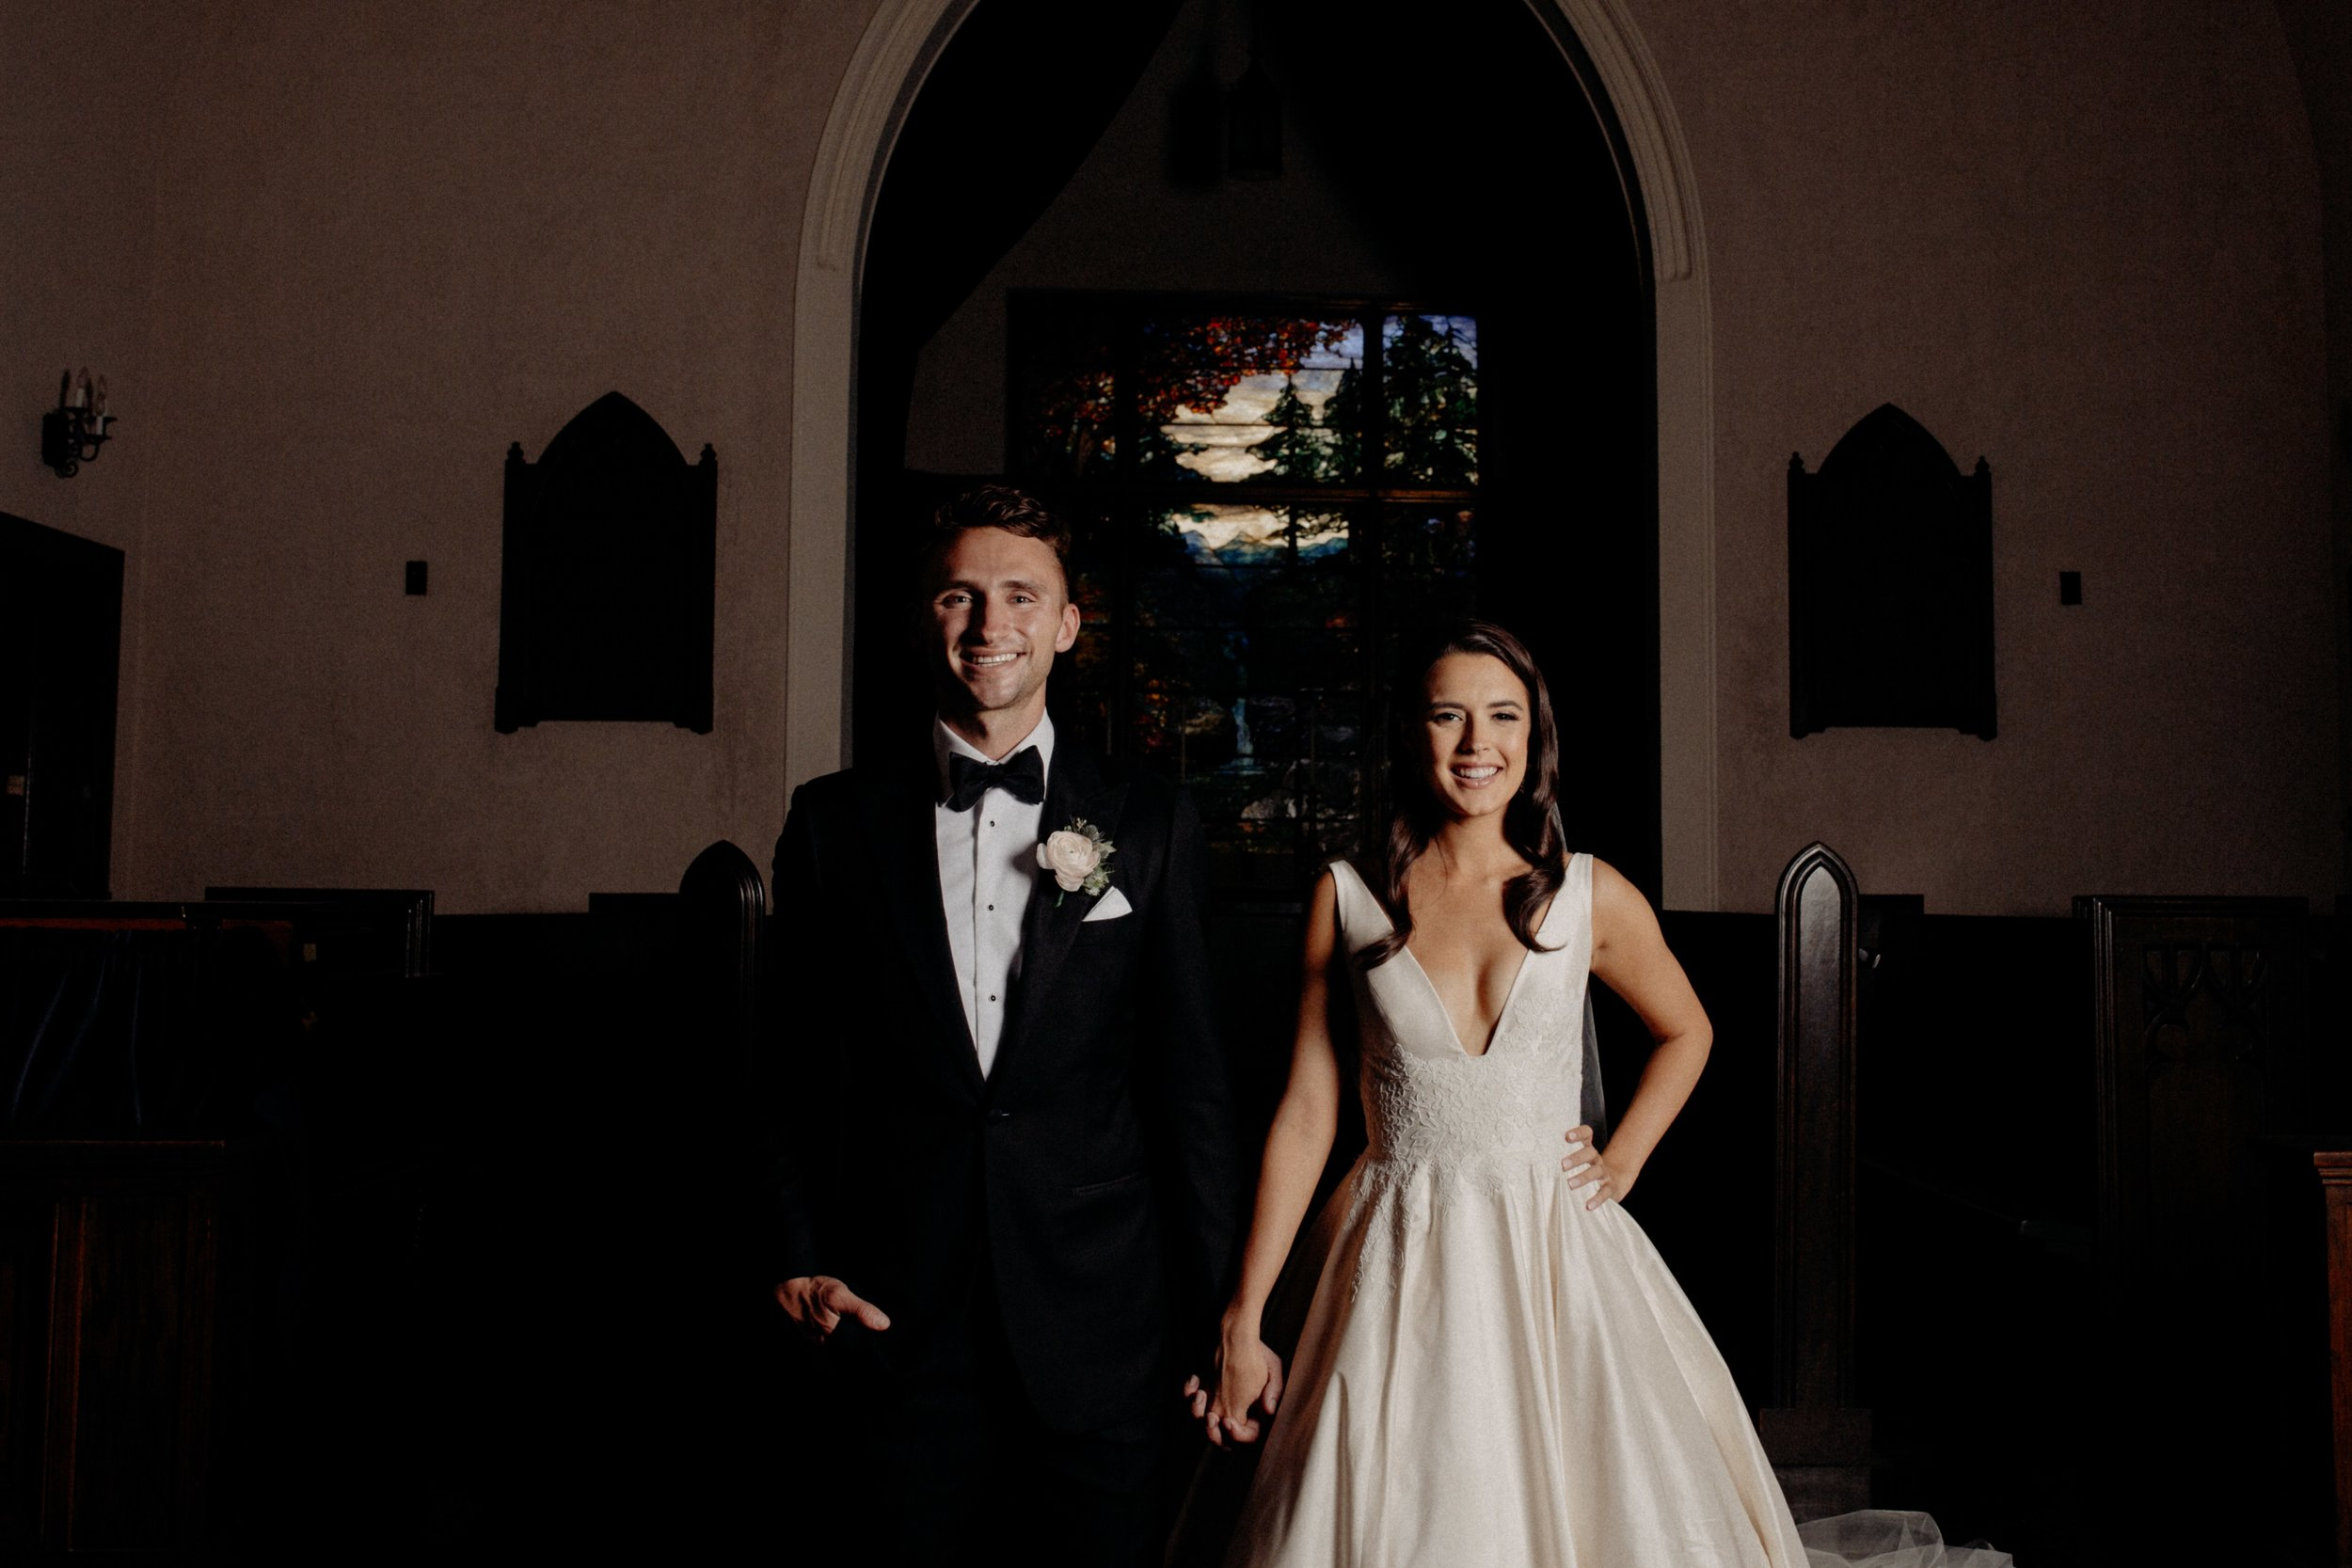 st-anthony-hotel-wedding-photography-10057san-antonio.JPG